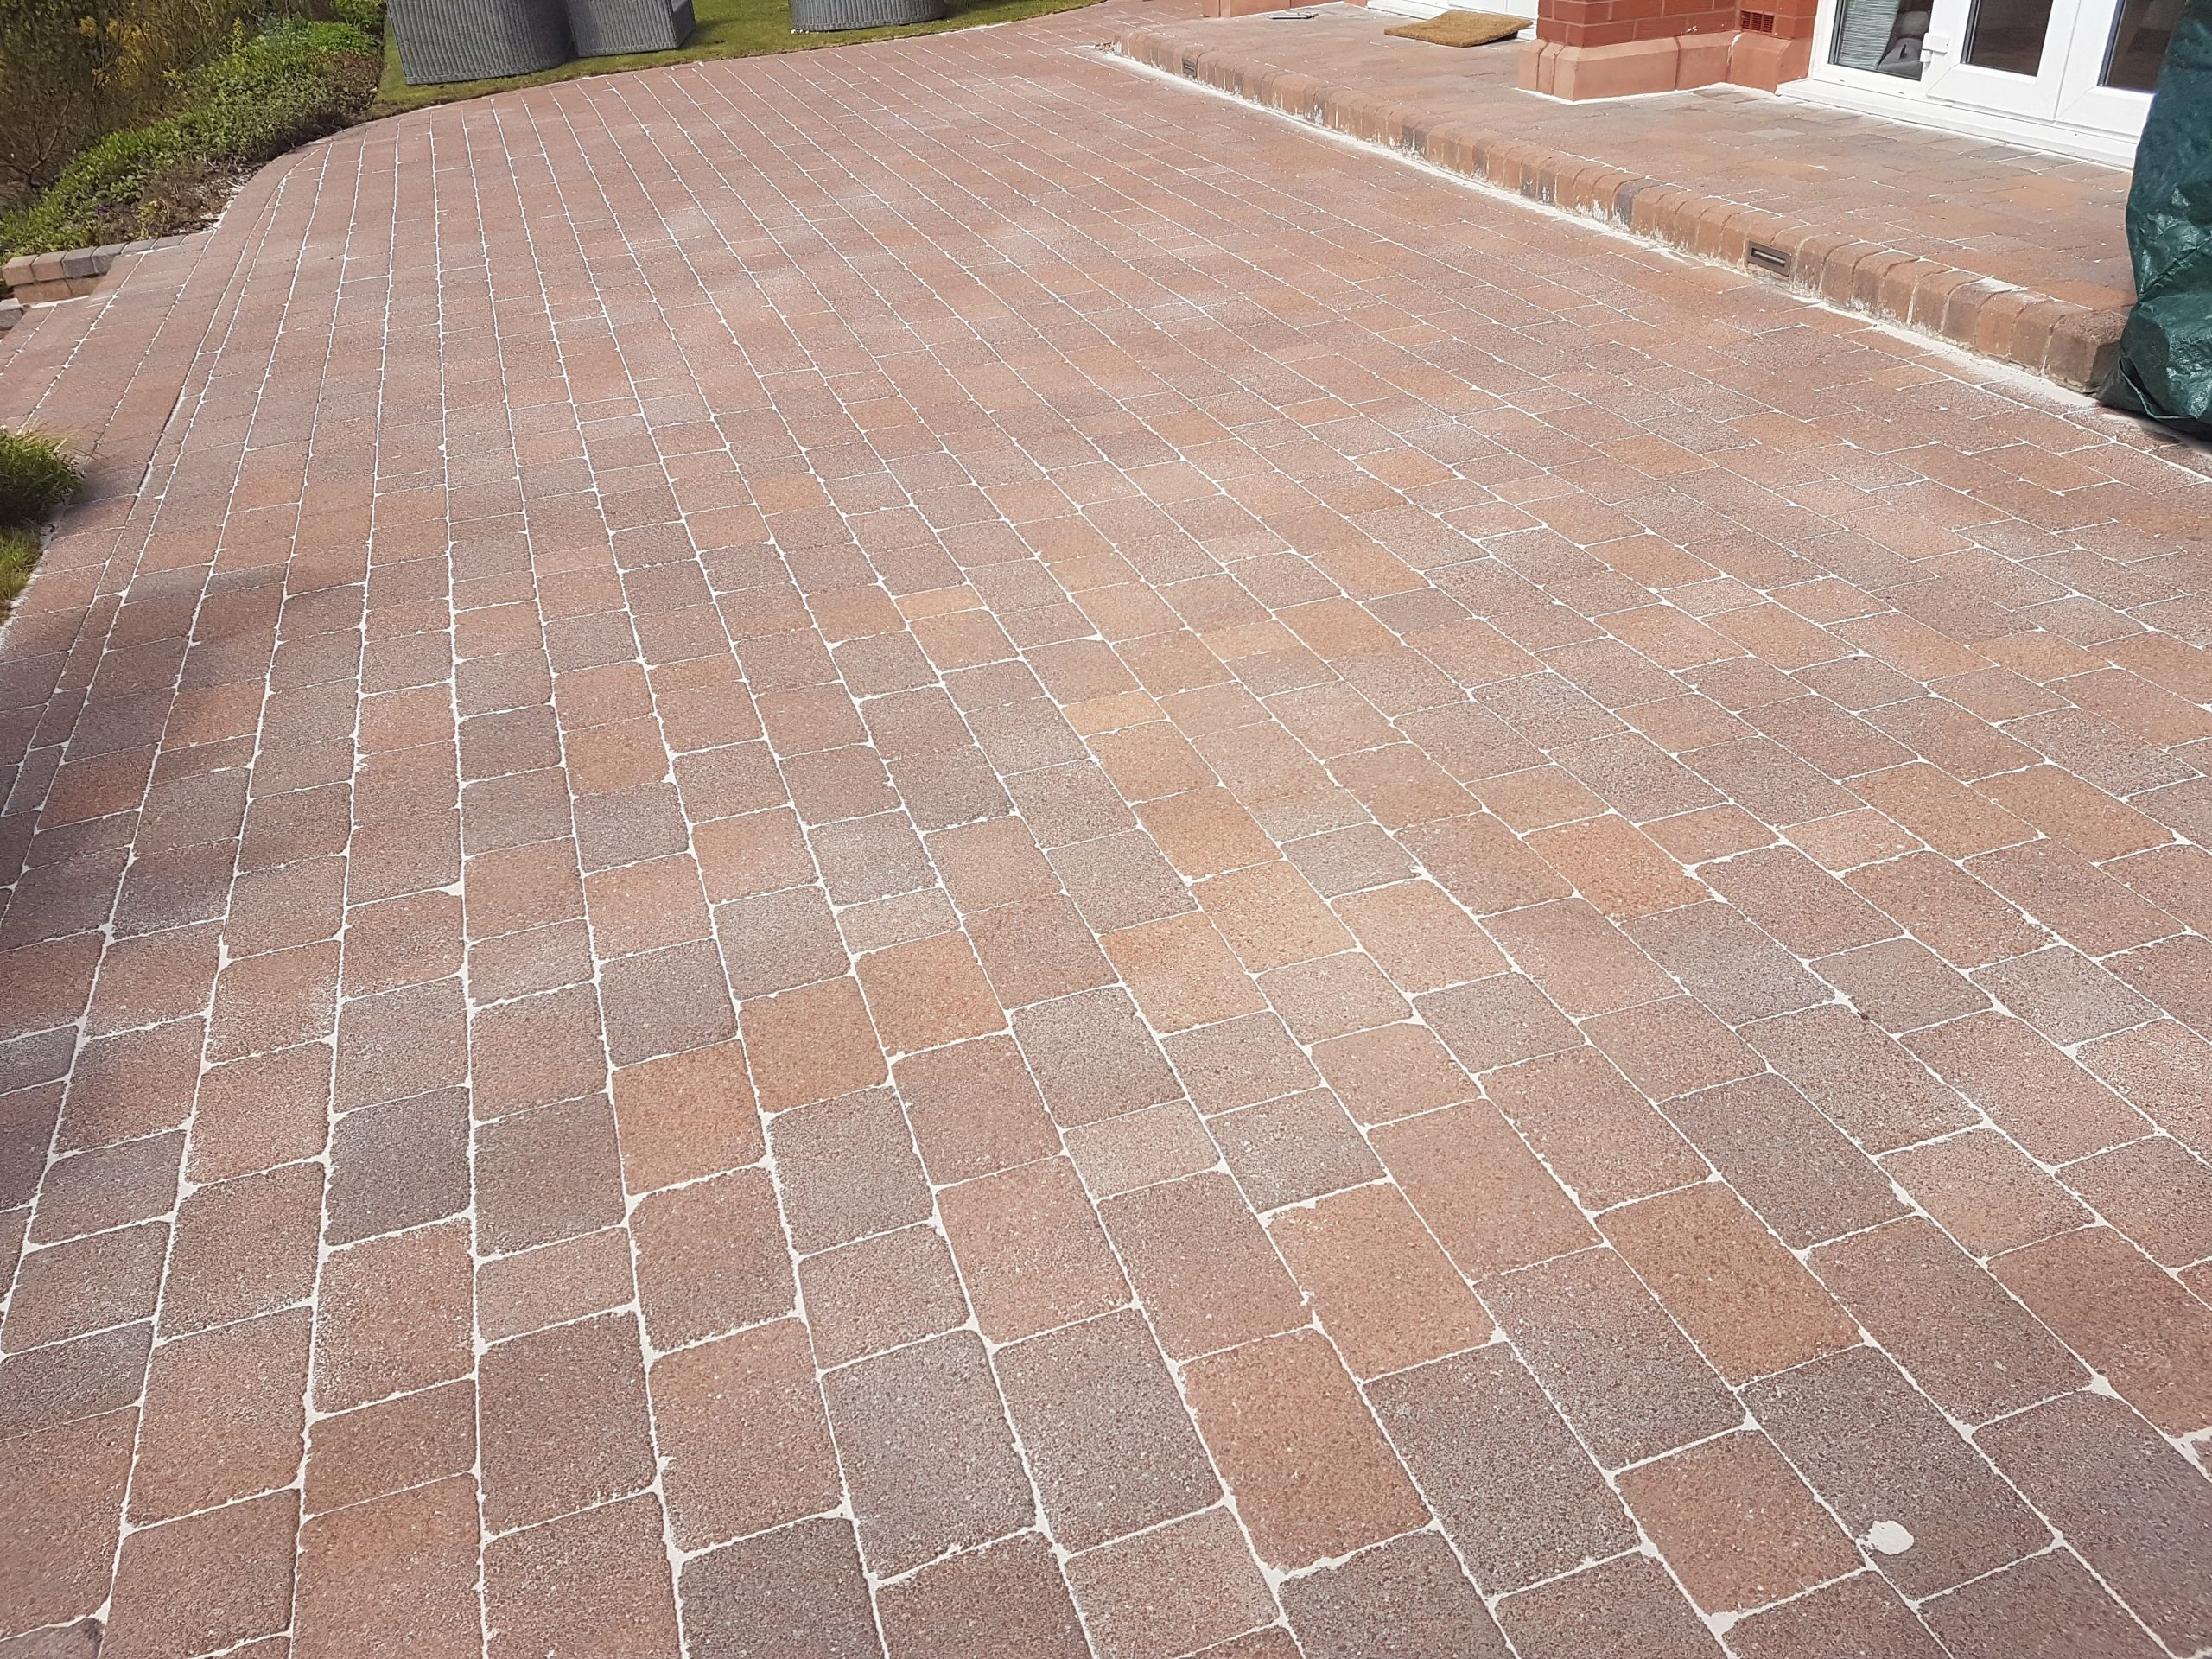 Driveway Cleaning in Glasgow